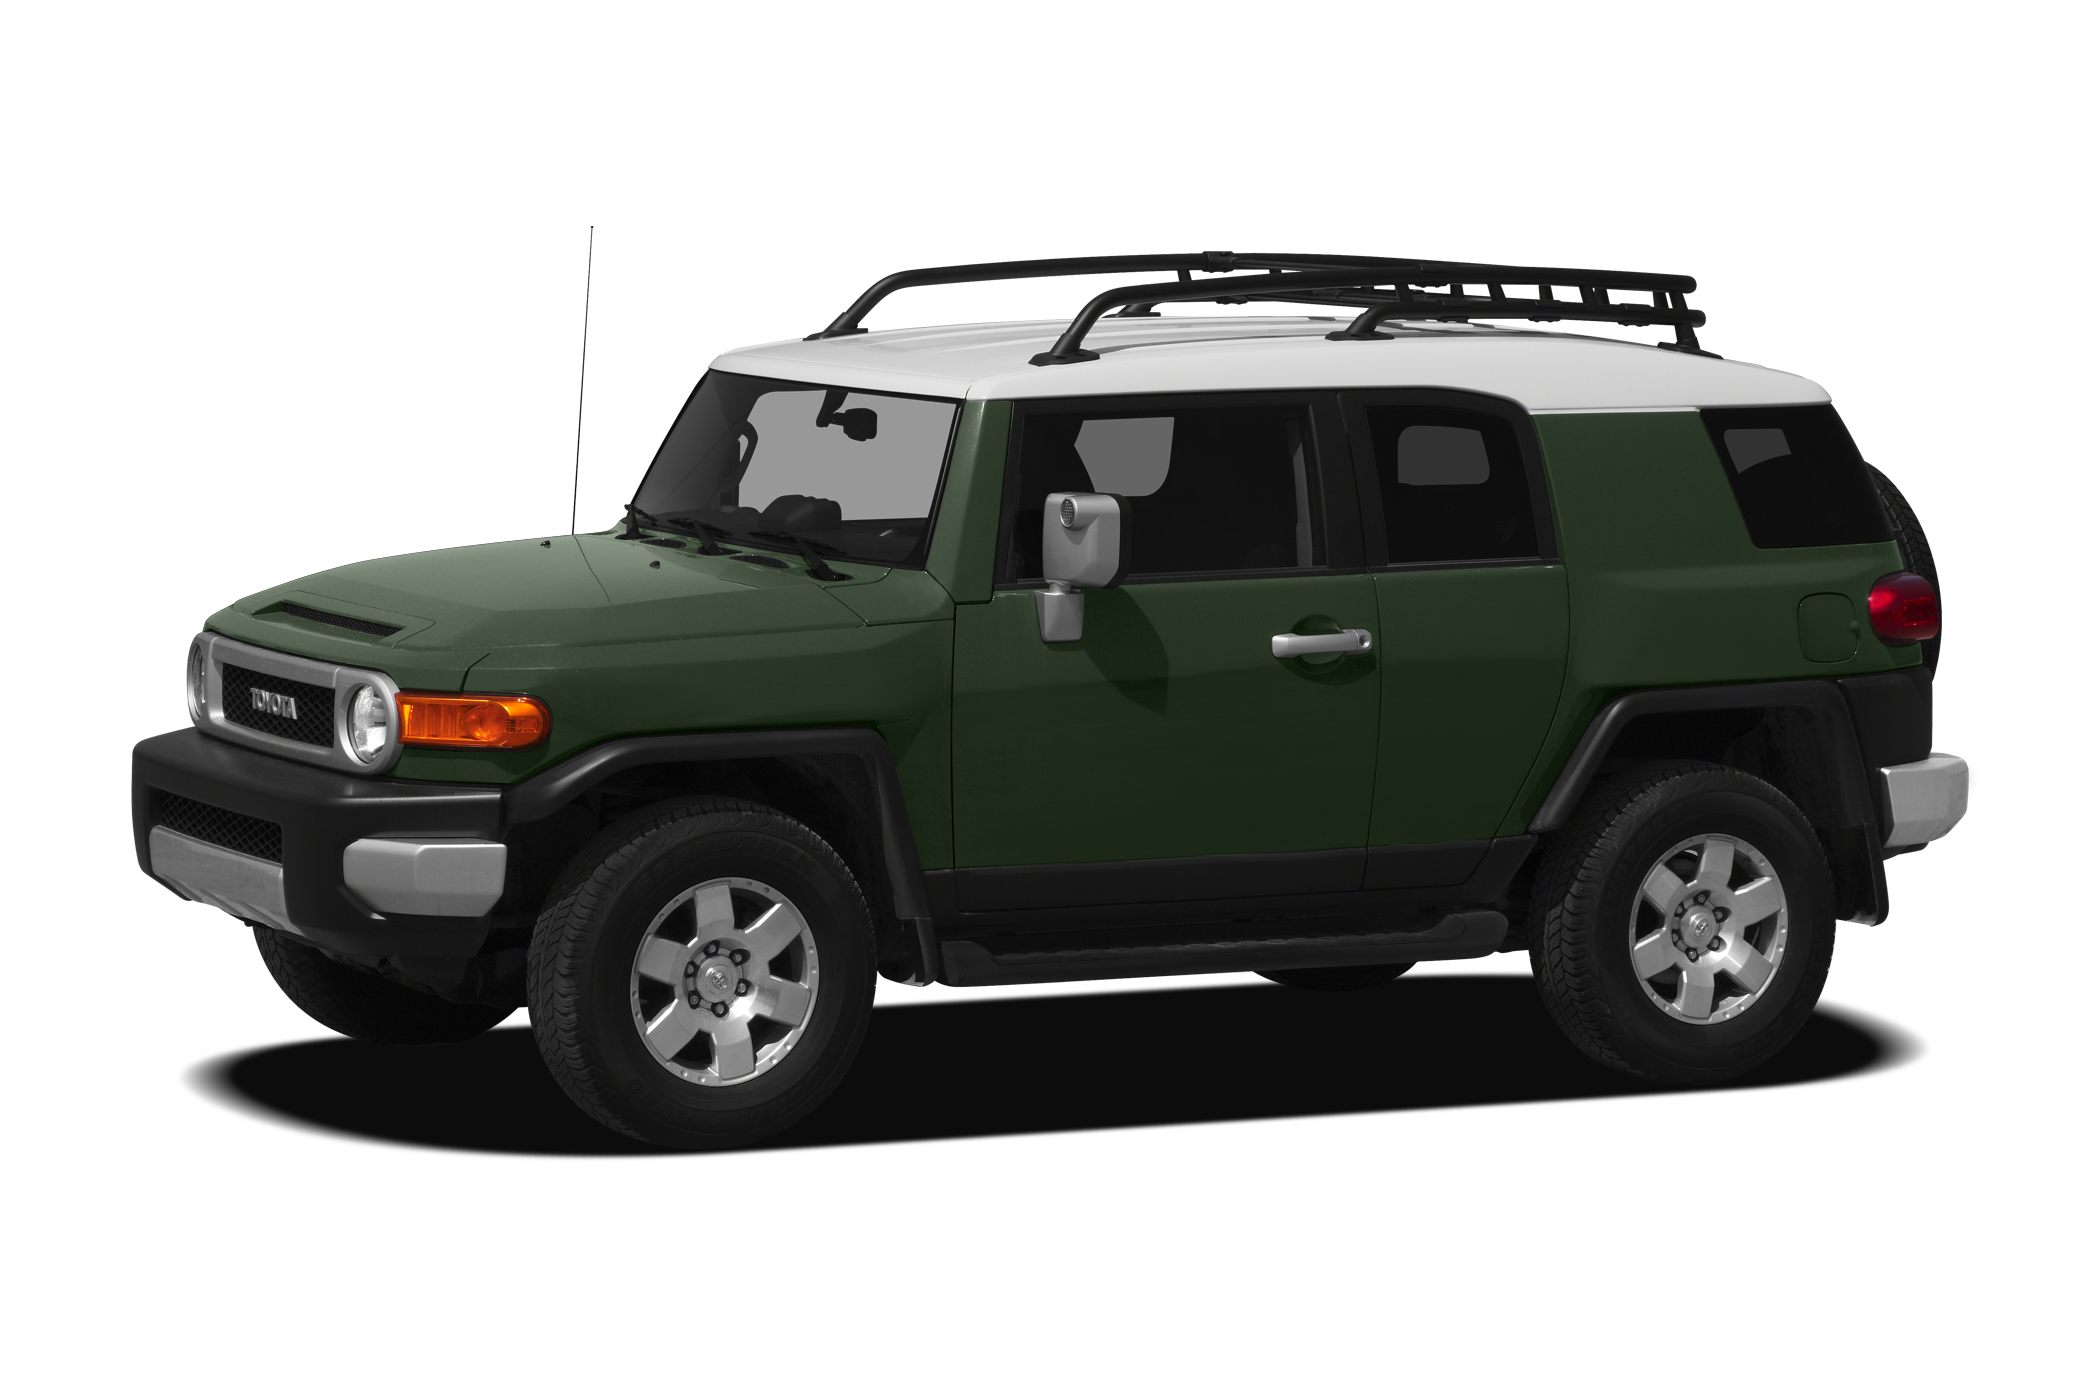 2012 Toyota Fj Cruiser New Car Test Drive Rh Autoblog Com 2012 Toyota Fj  Cruiser Owners Manual 2012 Toyota Fj Cruiser Backup Camera